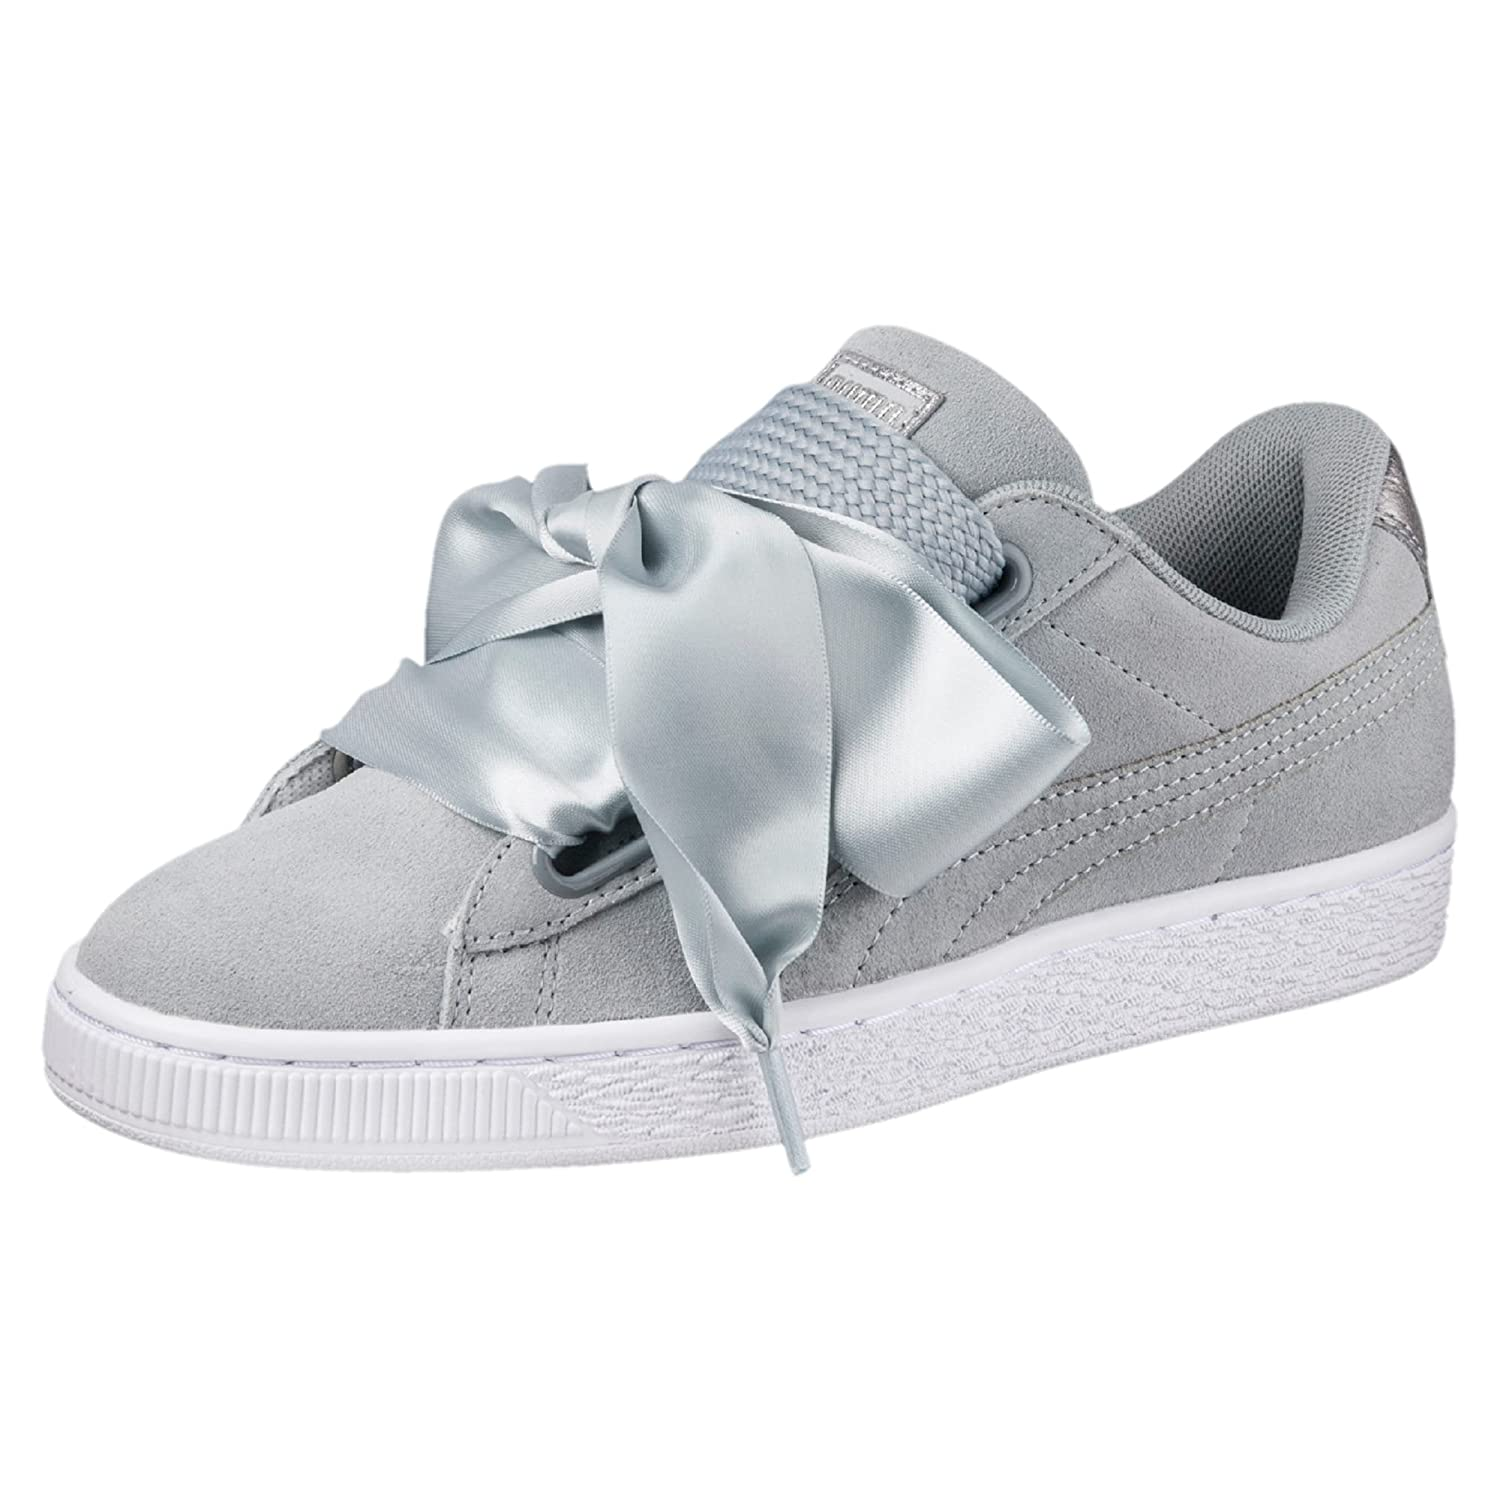 buy popular 04243 8b7fe Puma Women's Suede Heart Safari WN's Grey Sneakers - 6 UK ...